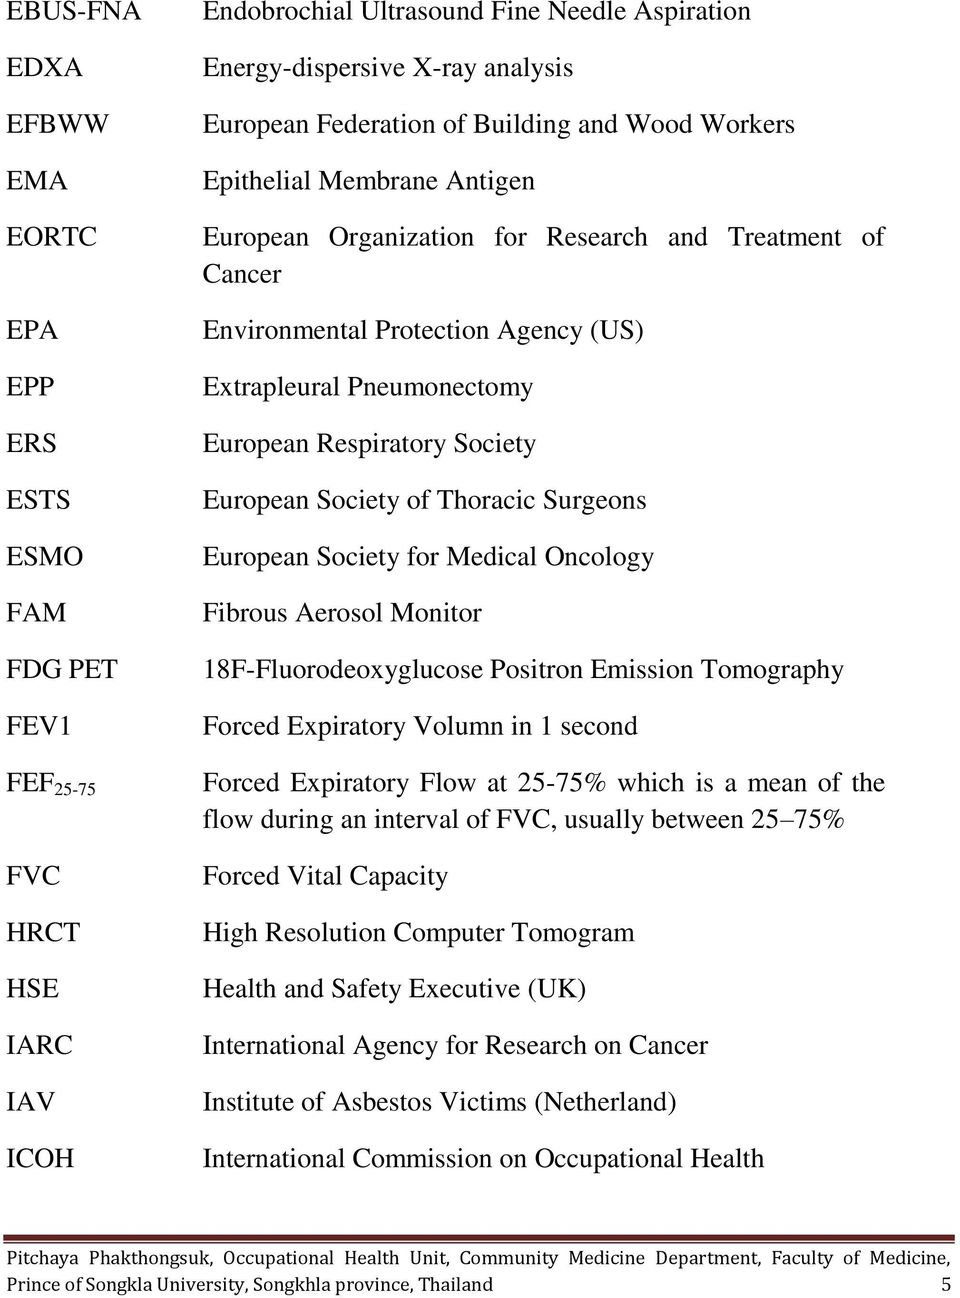 Respiratory Society European Society of Thoracic Surgeons European Society for Medical Oncology Fibrous Aerosol Monitor 18F-Fluorodeoxyglucose Positron Emission Tomography Forced Expiratory Volumn in